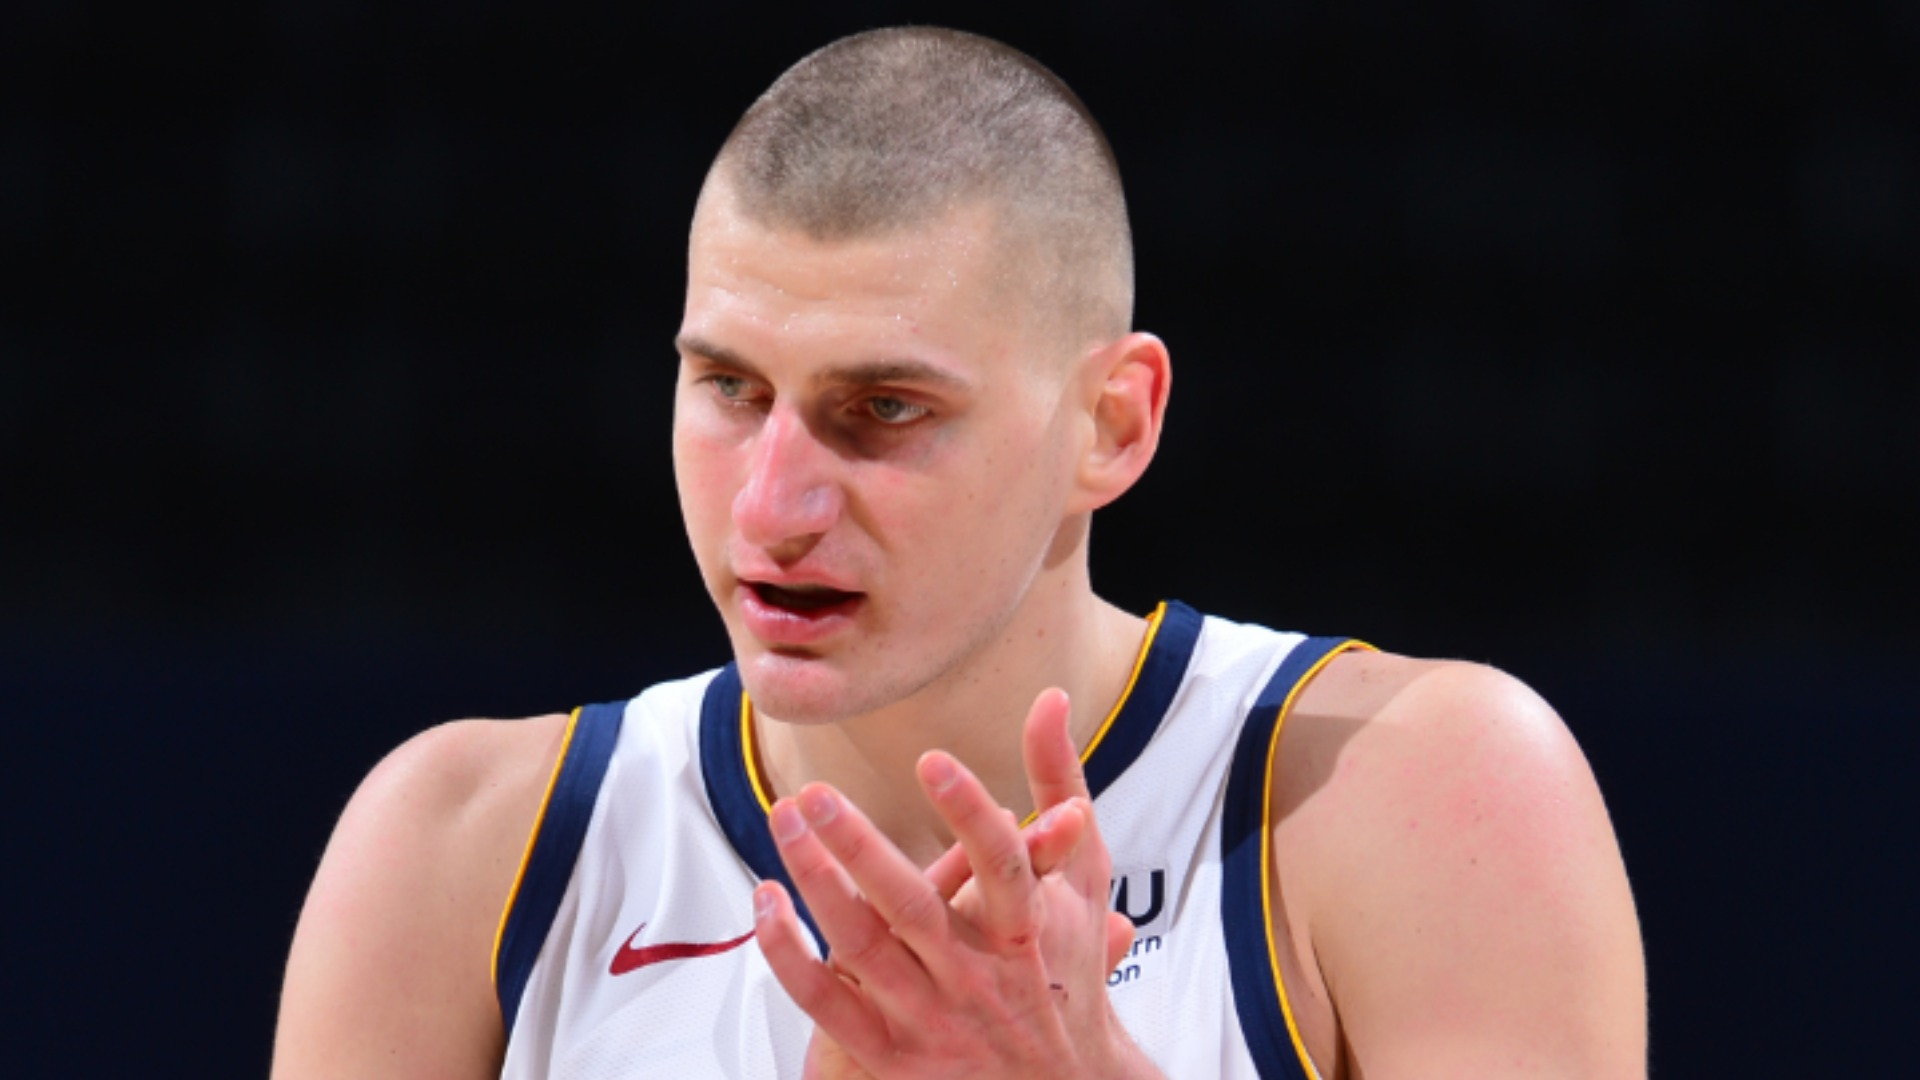 How did Malone get Jokic to score more? - I beat him with a pillowcase of soda cans, jokes Nuggets coach